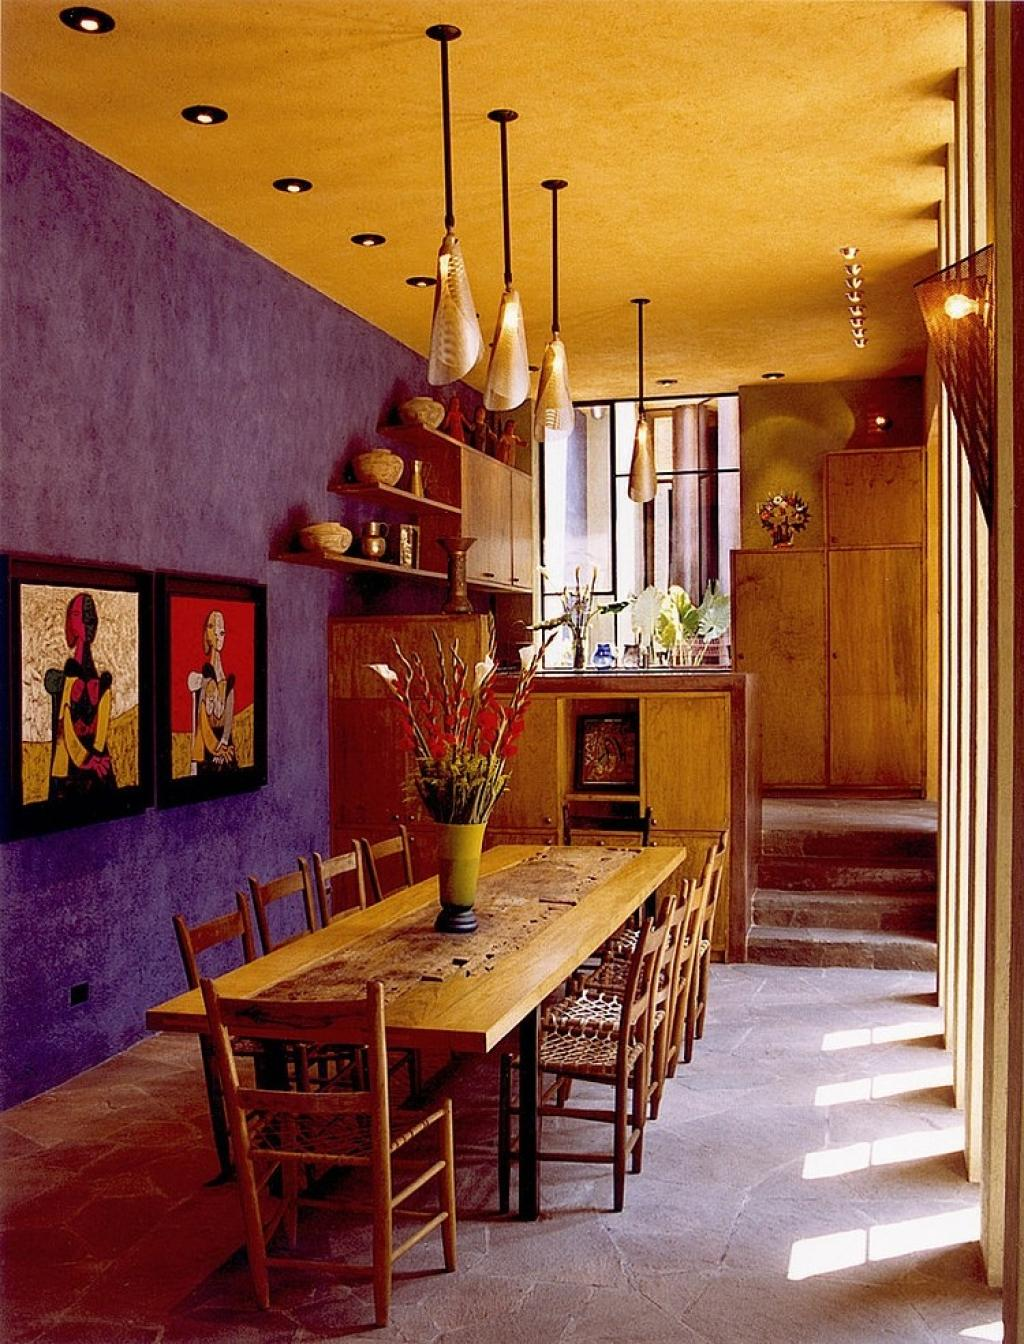 Traditional Interior Design By Ownby: 28 Alluring Contemporary Mexican Interior Design Ideas